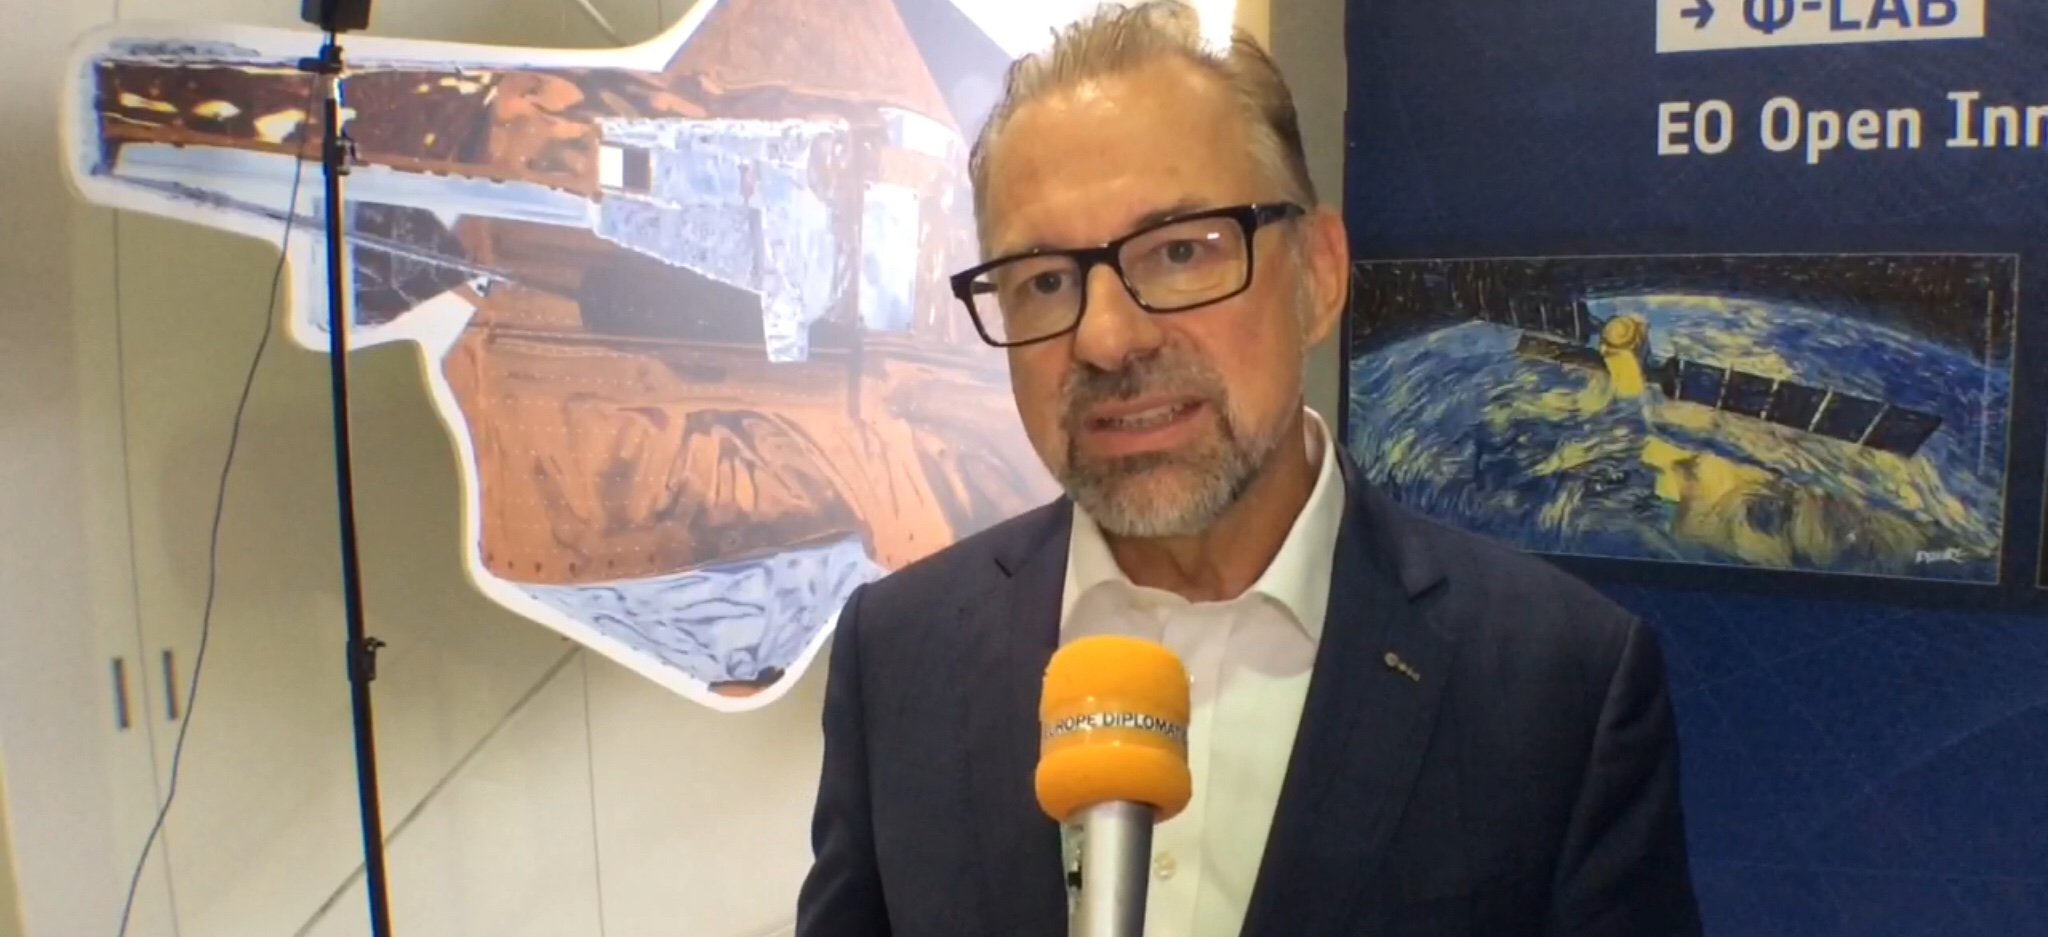 ESA Aschbacher calls for investing in space